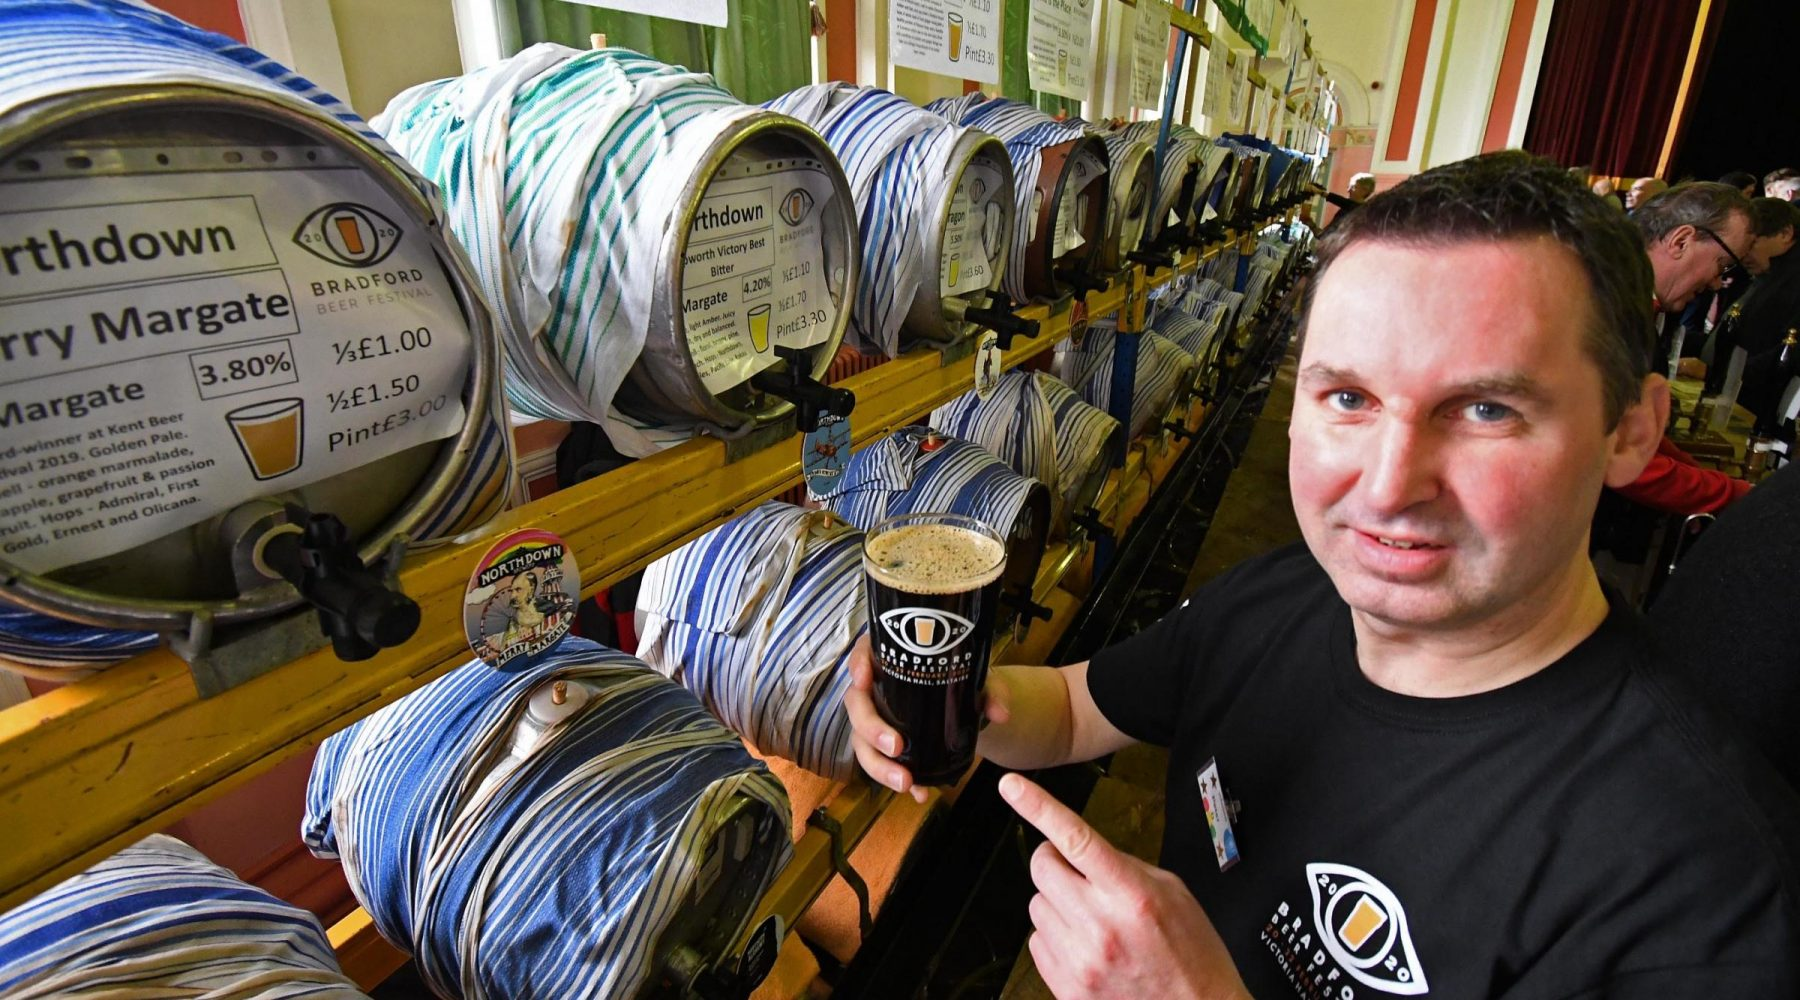 Pubs 'unfairly targeted' by government, says Bradford CAMRA…